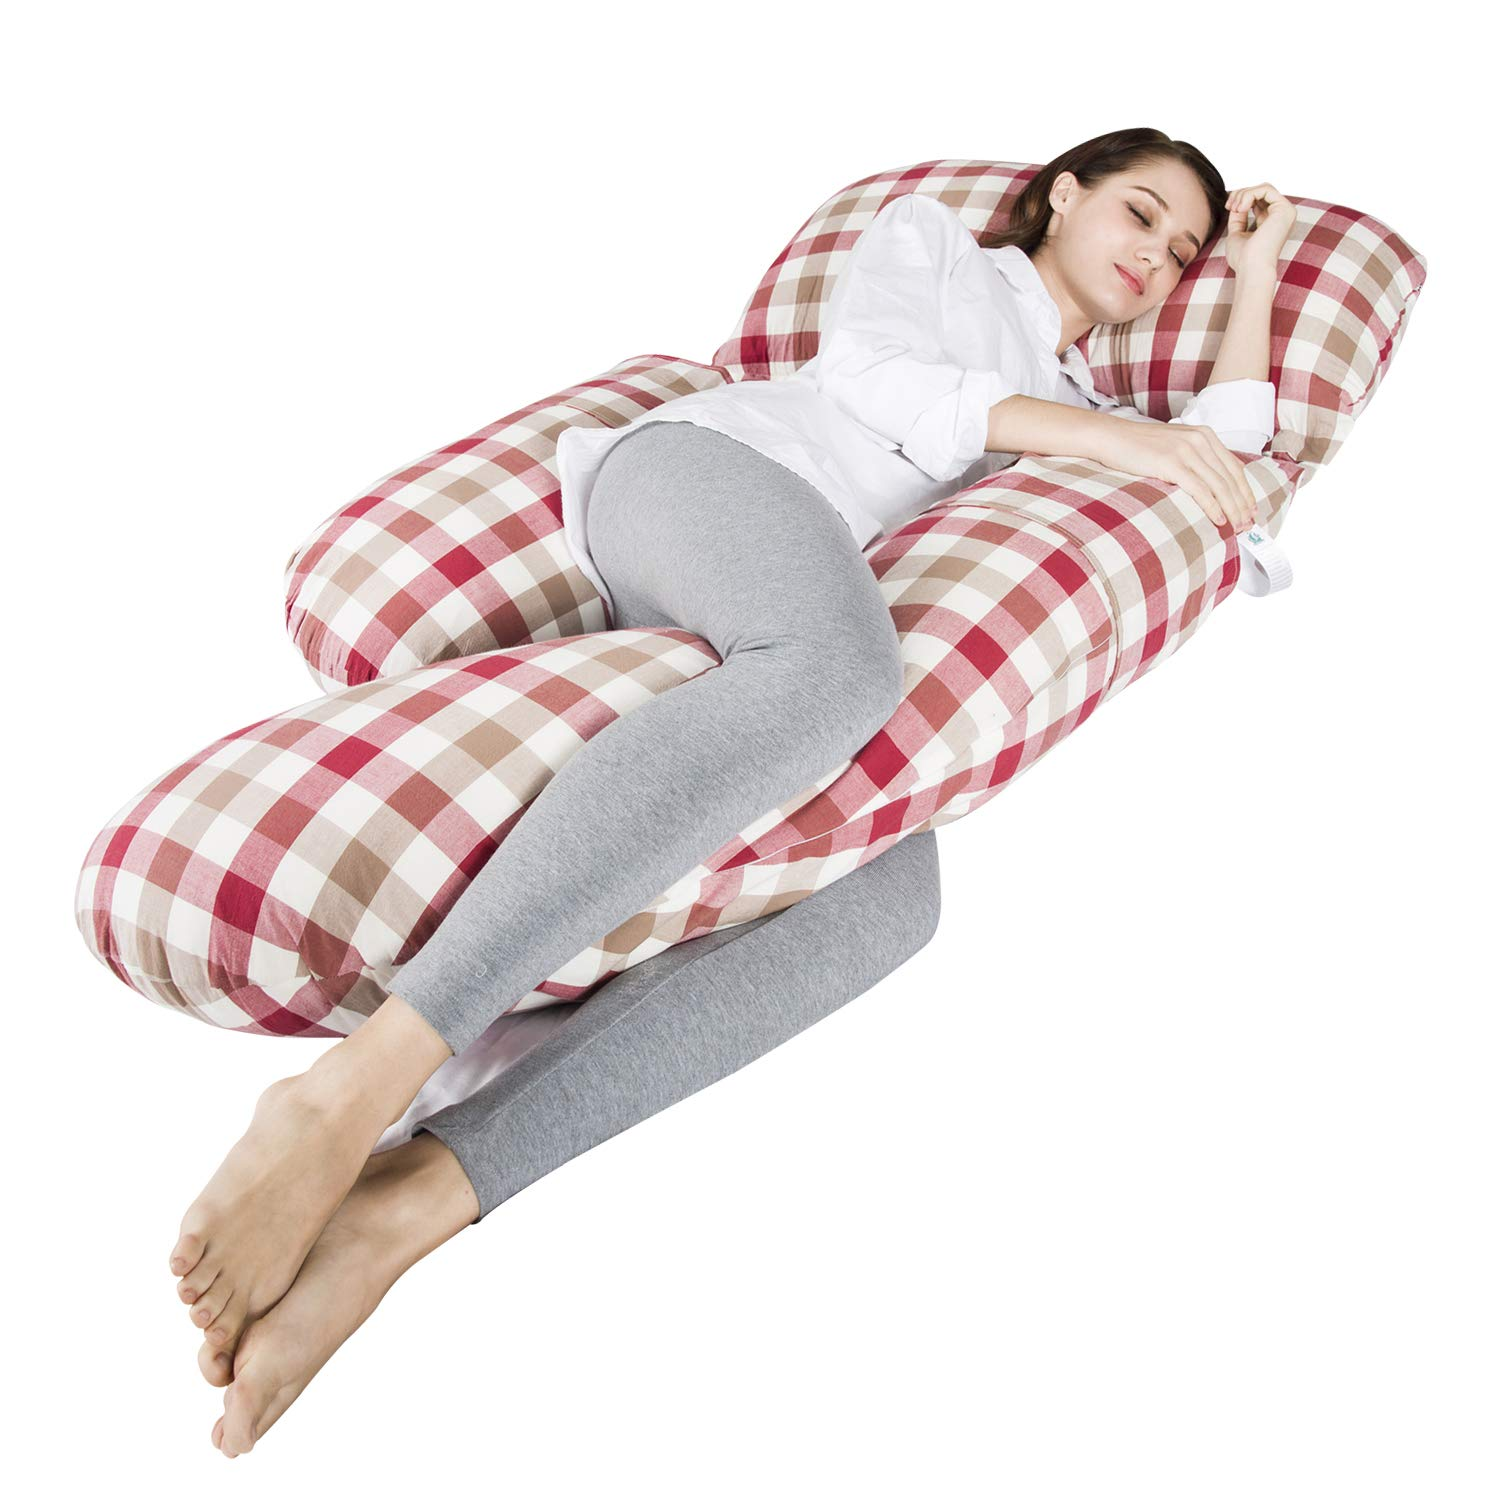 Sanxian Full Body Multifunctional Maternity Pillow with Washable Cotton Pillowcase Cover - G Shaped Pillow/ 100% EPE Cotton Filling